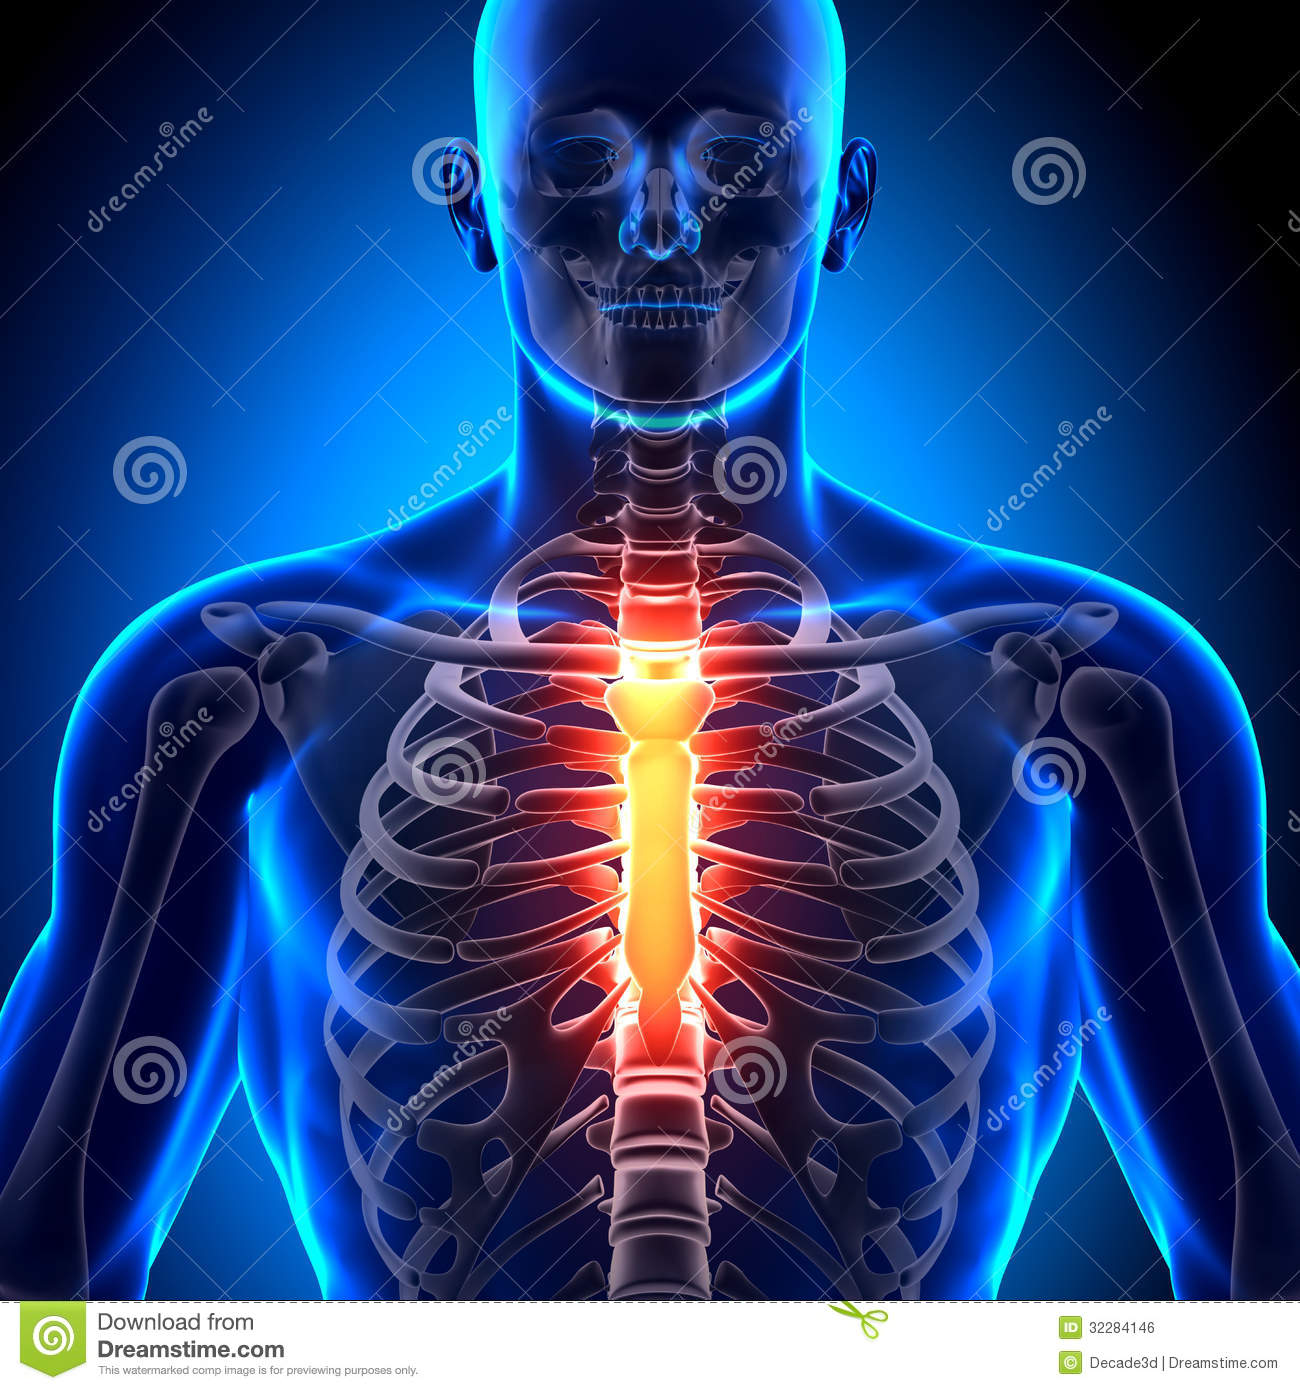 Royalty Free Stock Image Sternum Anatomy Bones Medical Imaging Image32284146